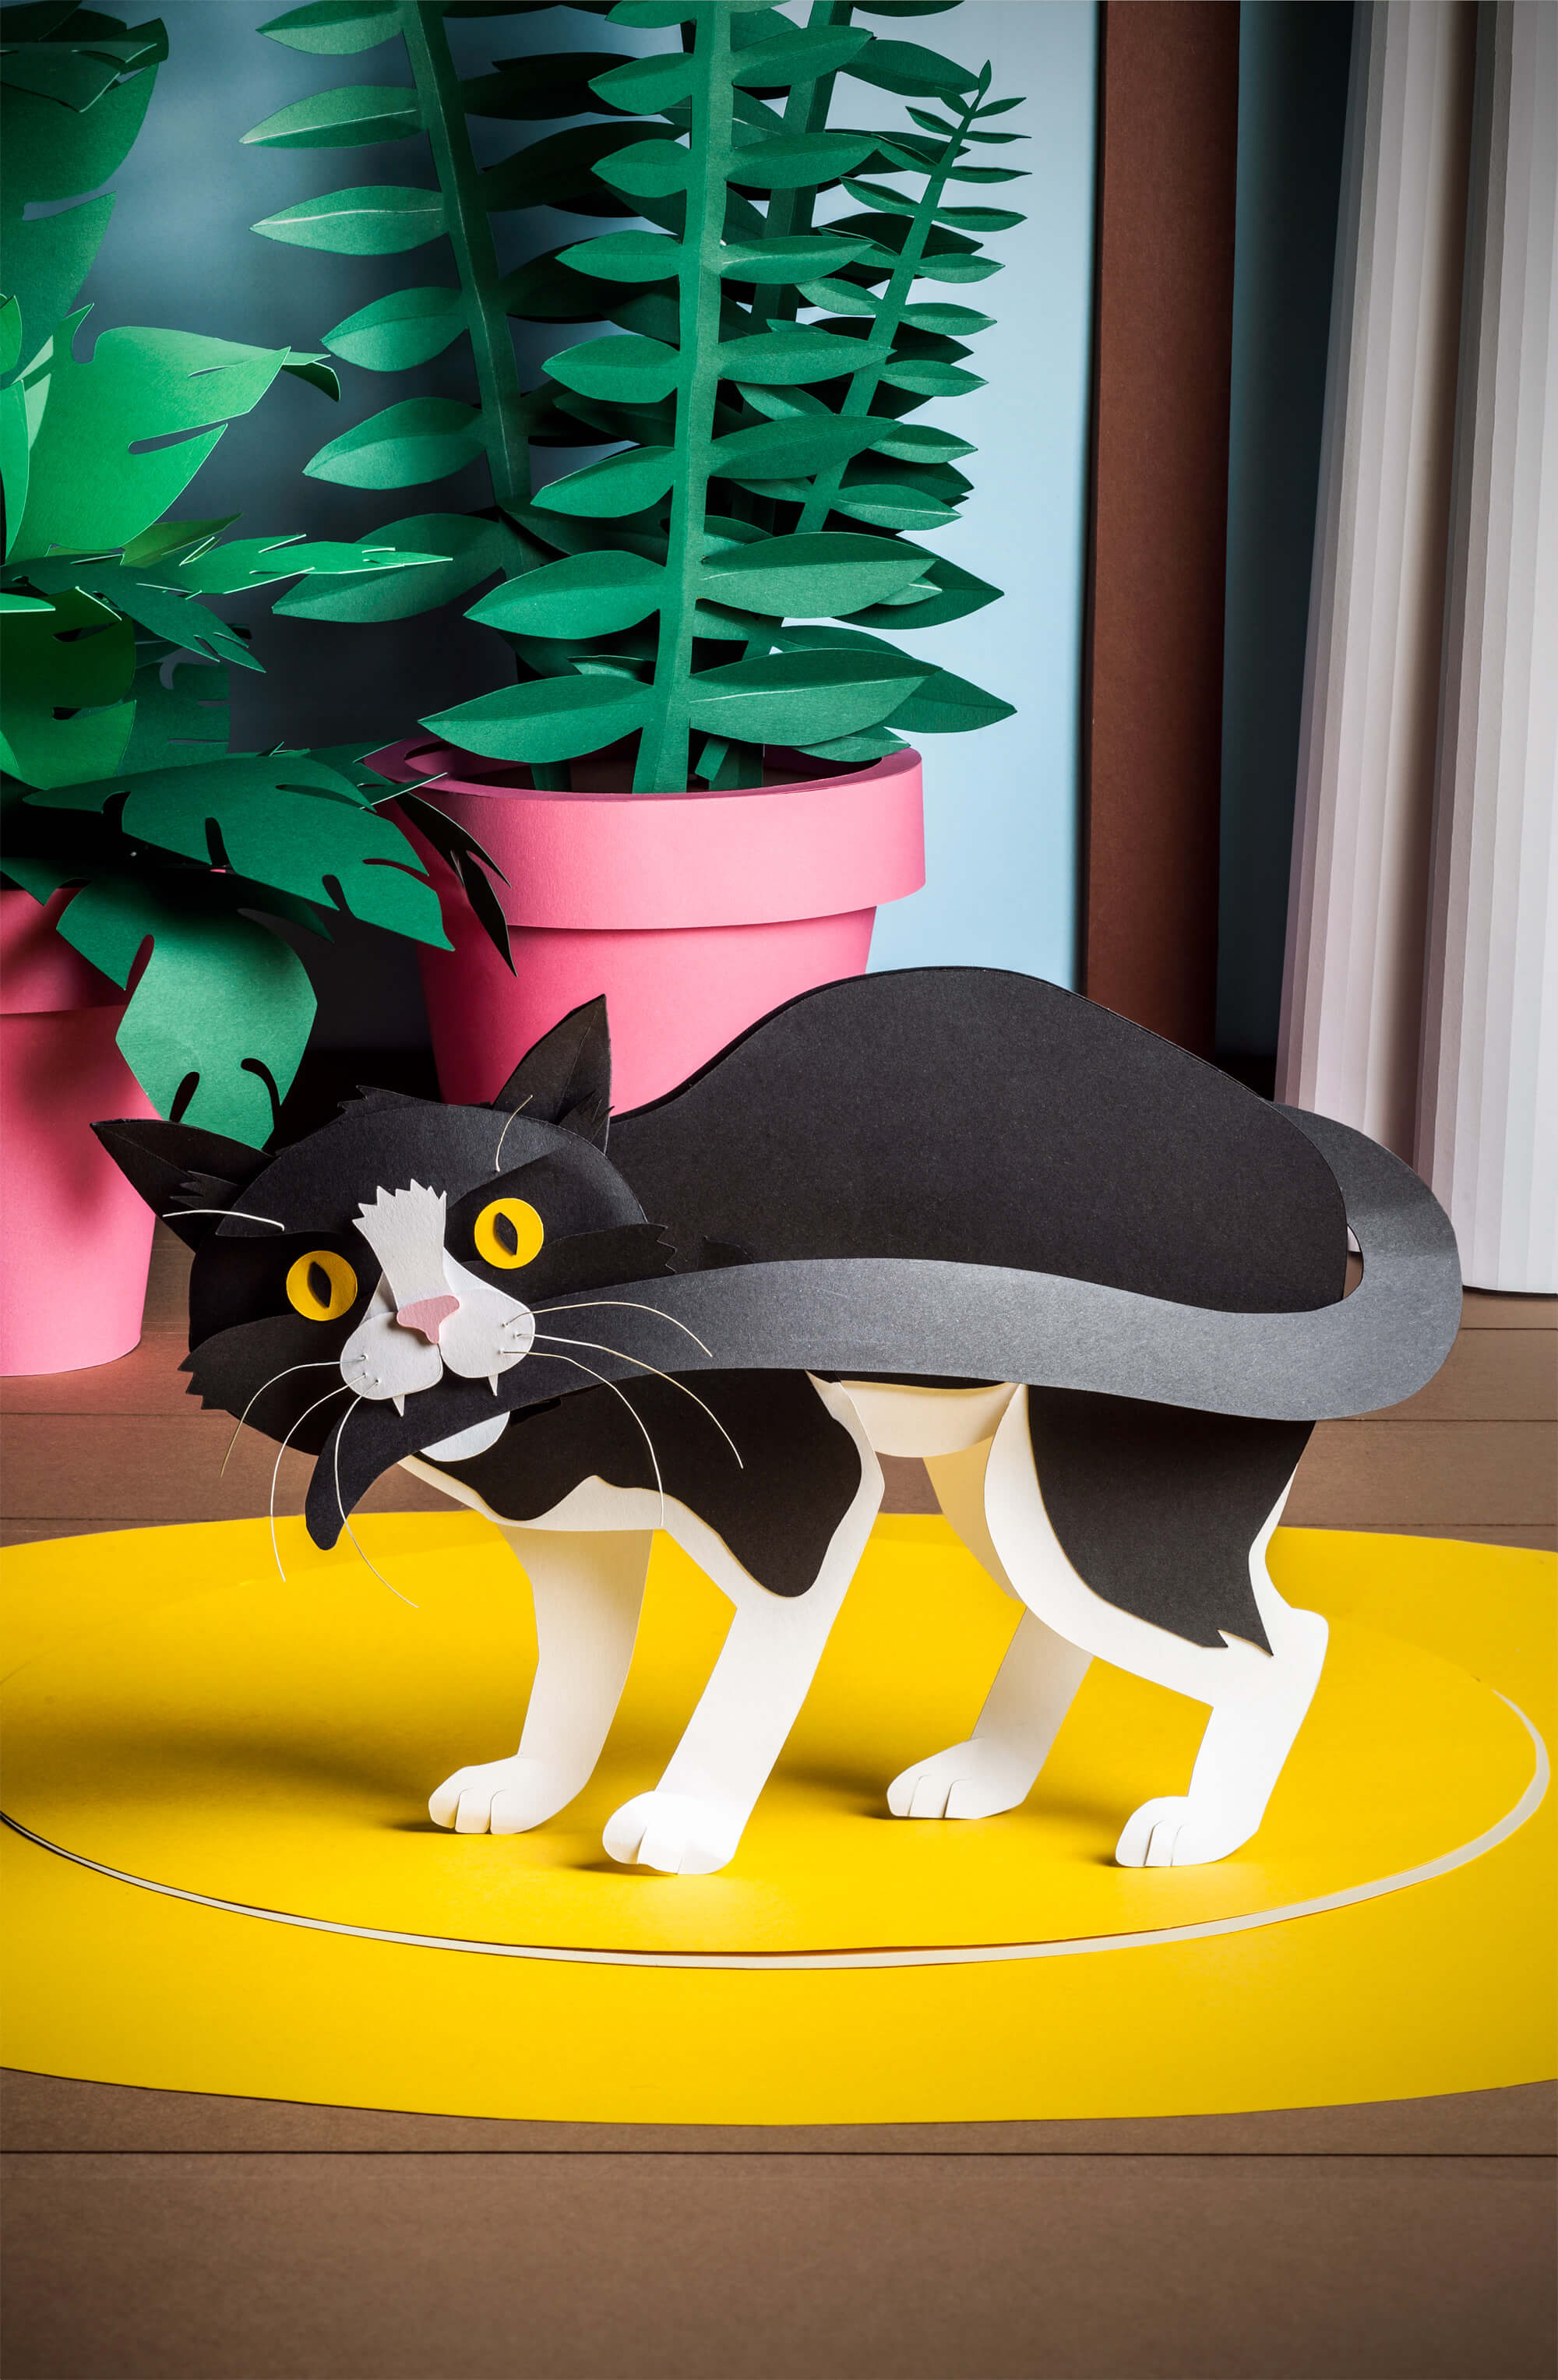 allianz_cat_paperart_katrinrodegast_webs